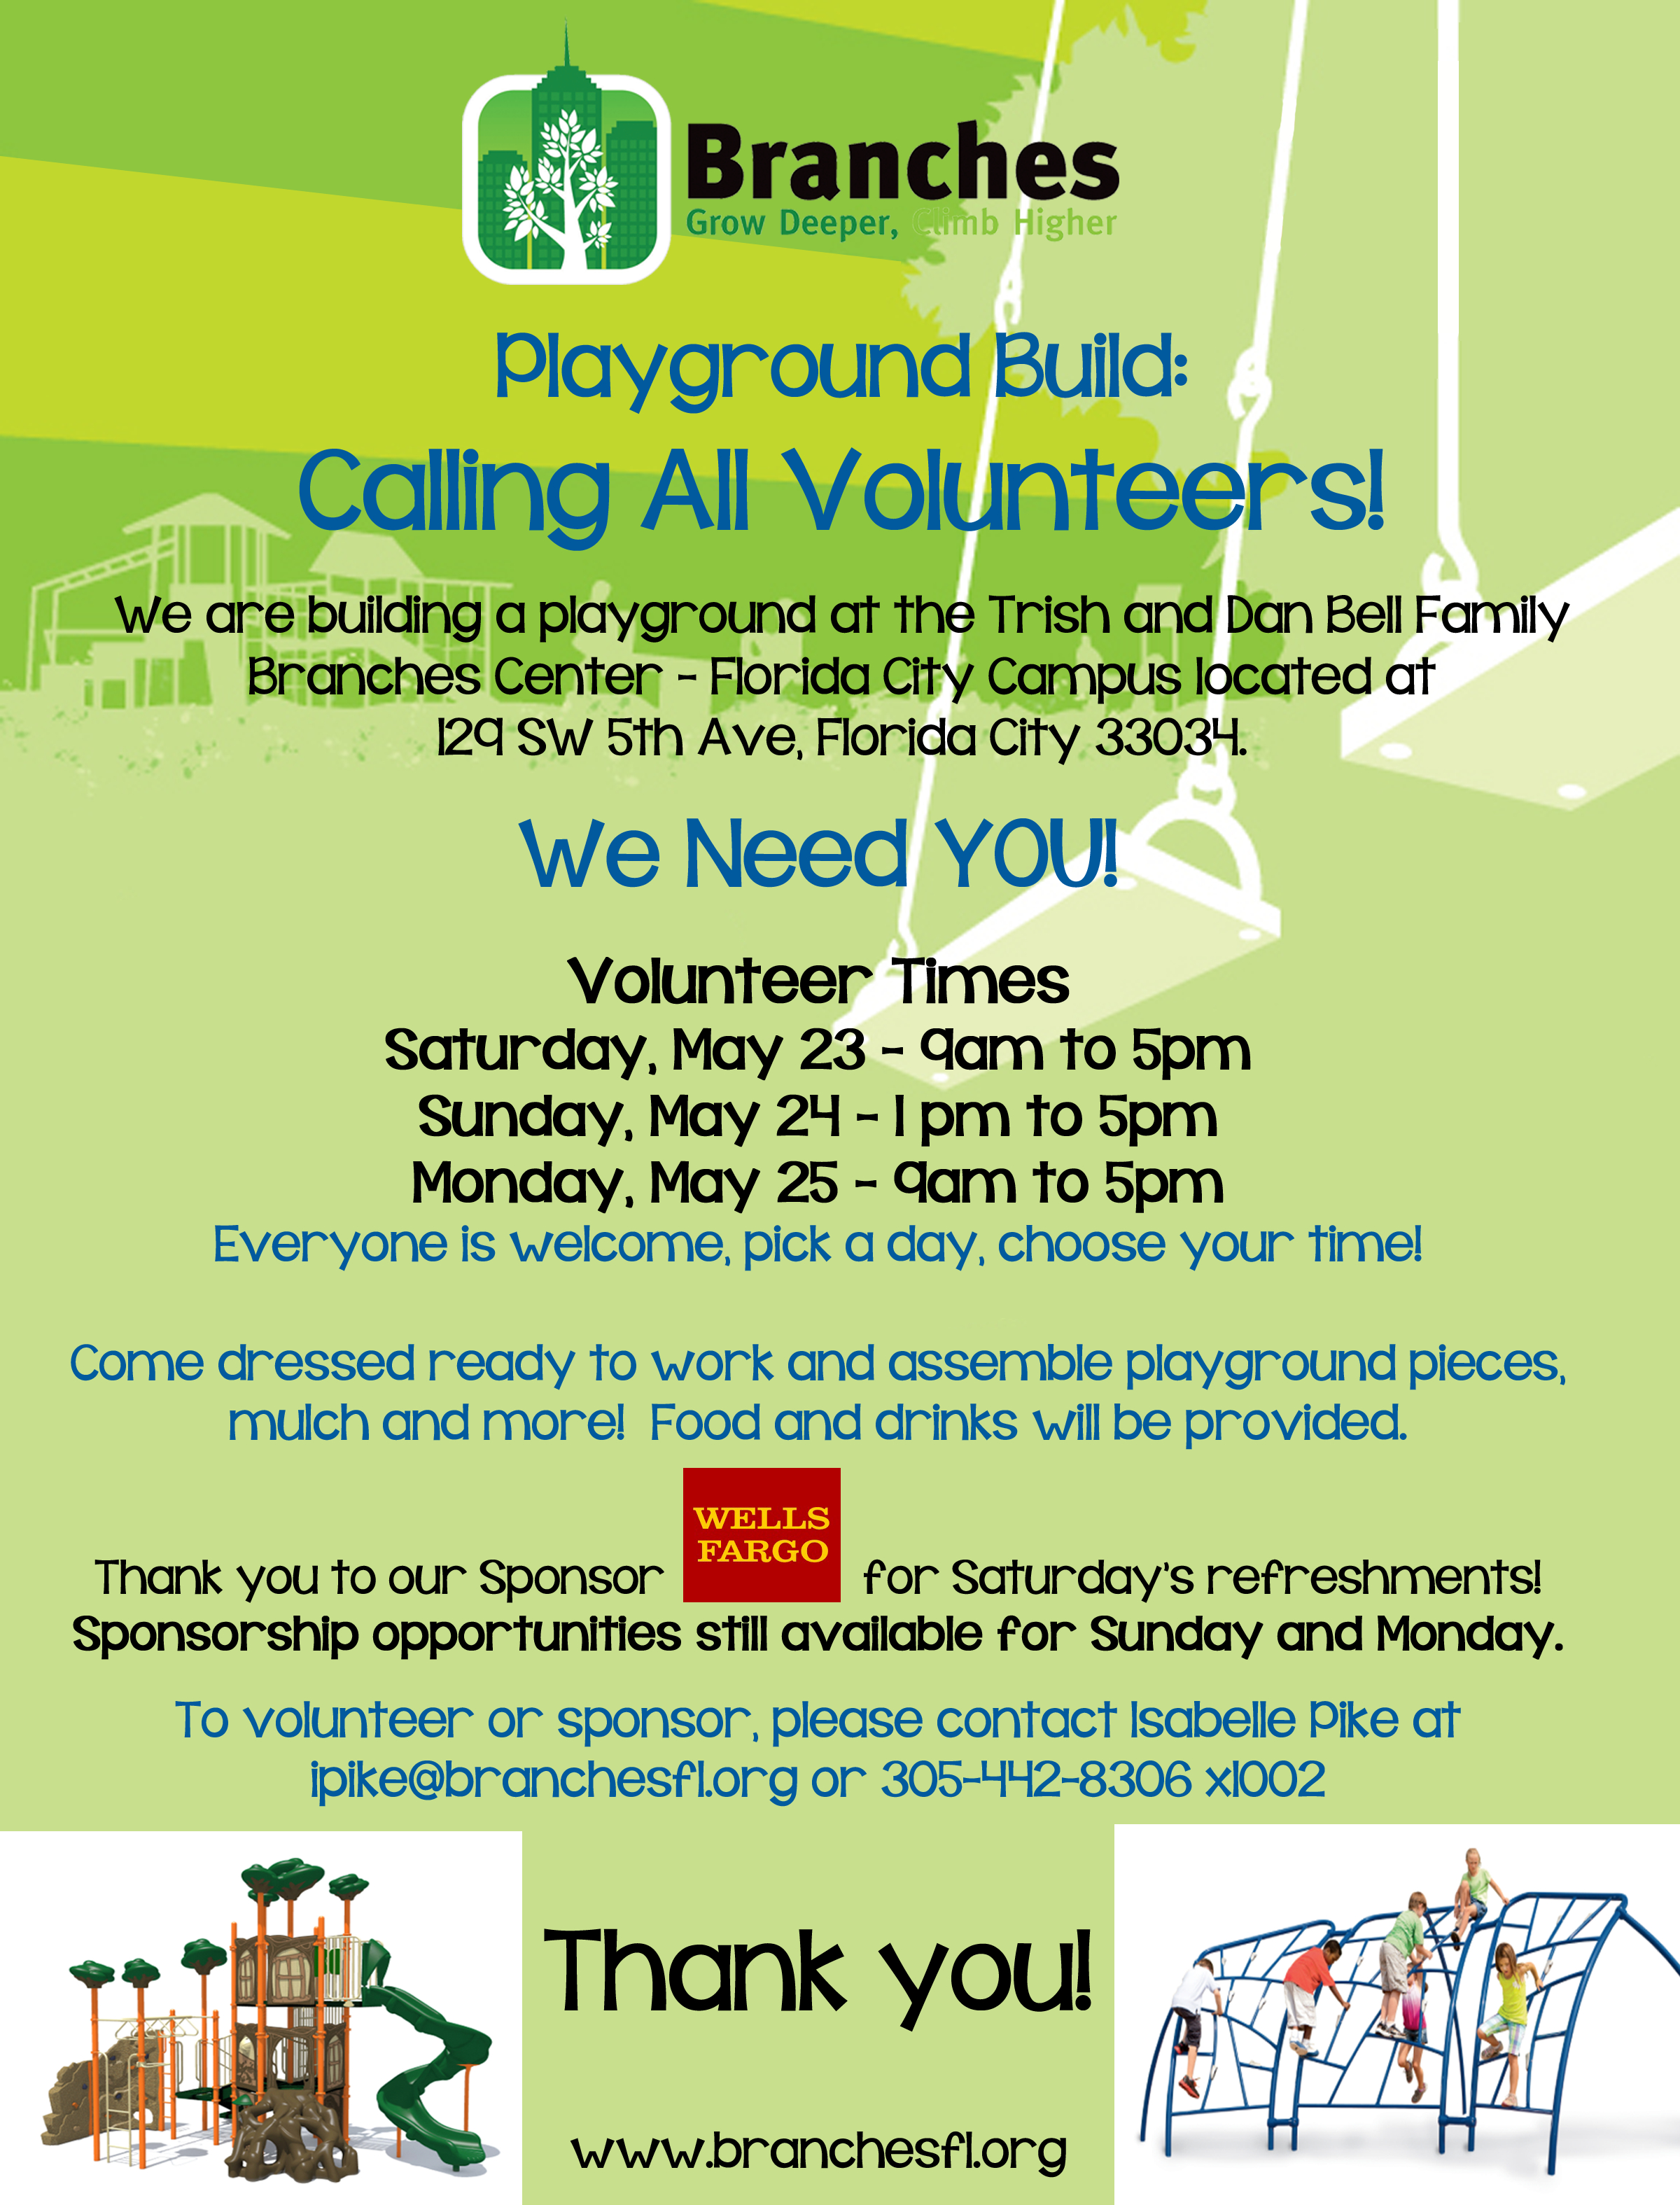 May2015Branches FL City PlaygroundBuild